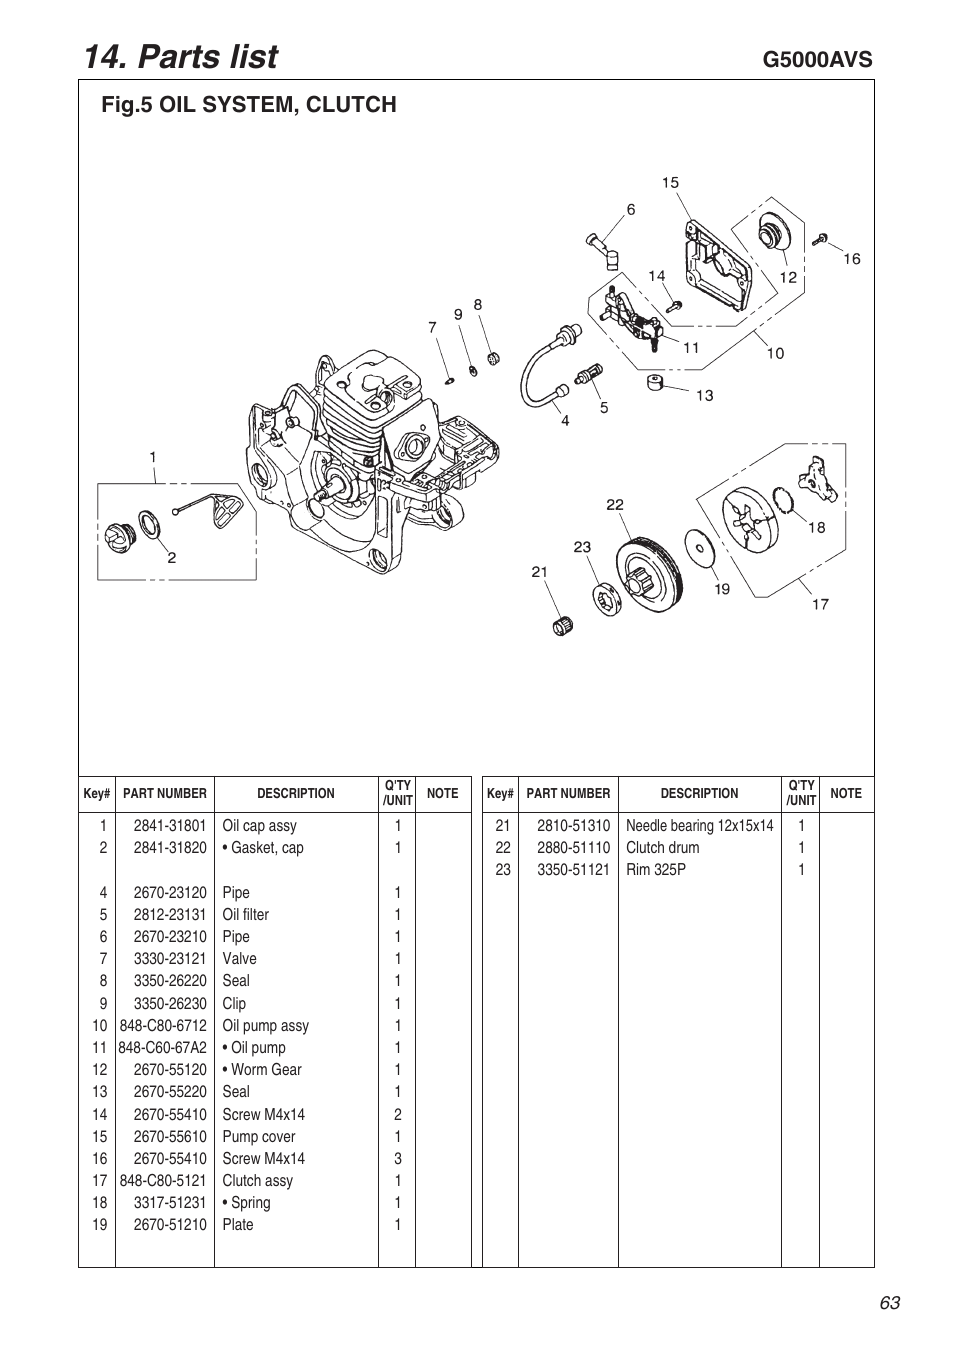 redmax g5000avs page63 parts list redmax g5000avs user manual page 63 72